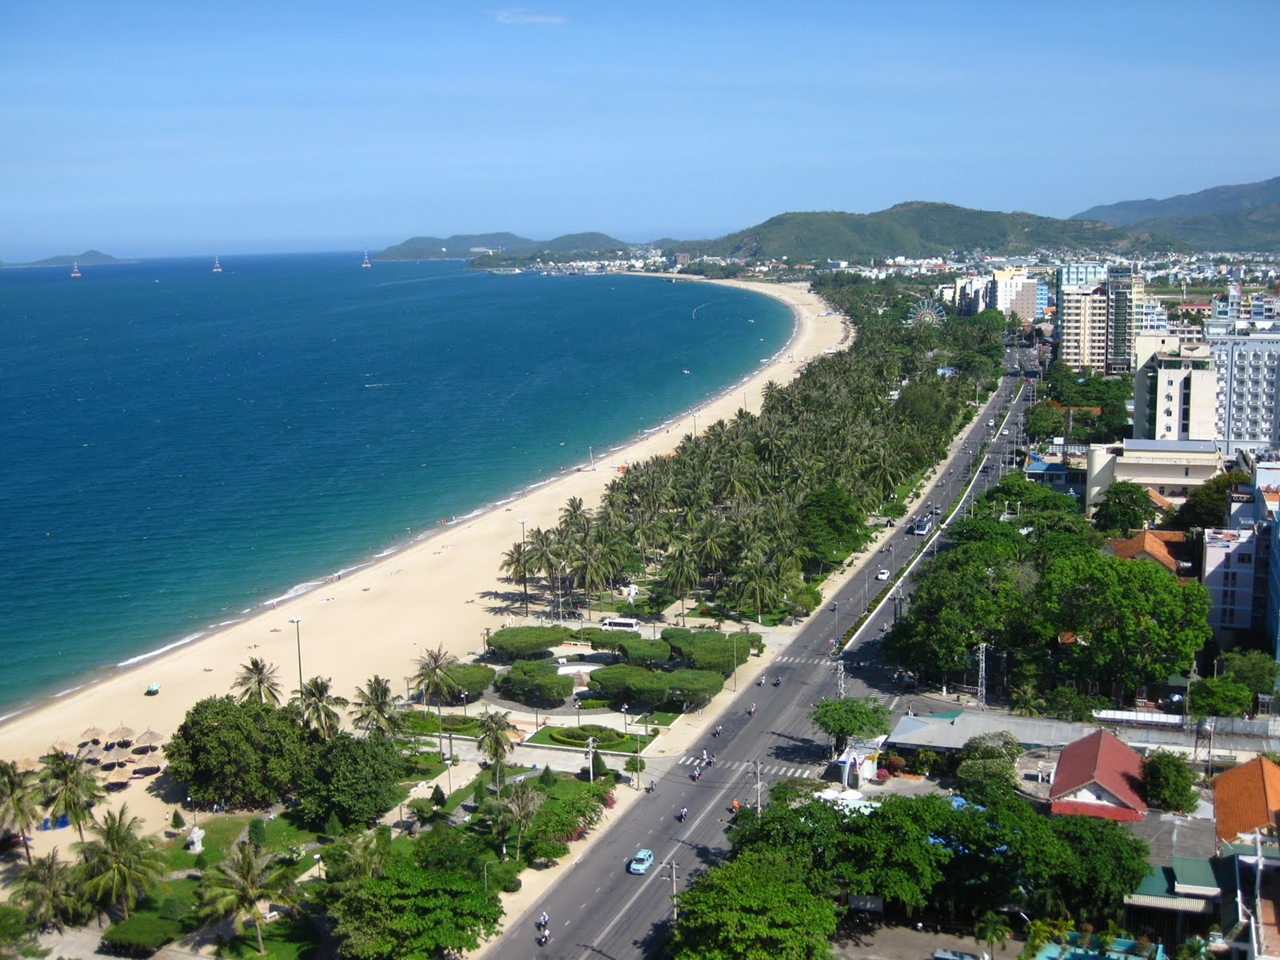 Picture of Nha Trang